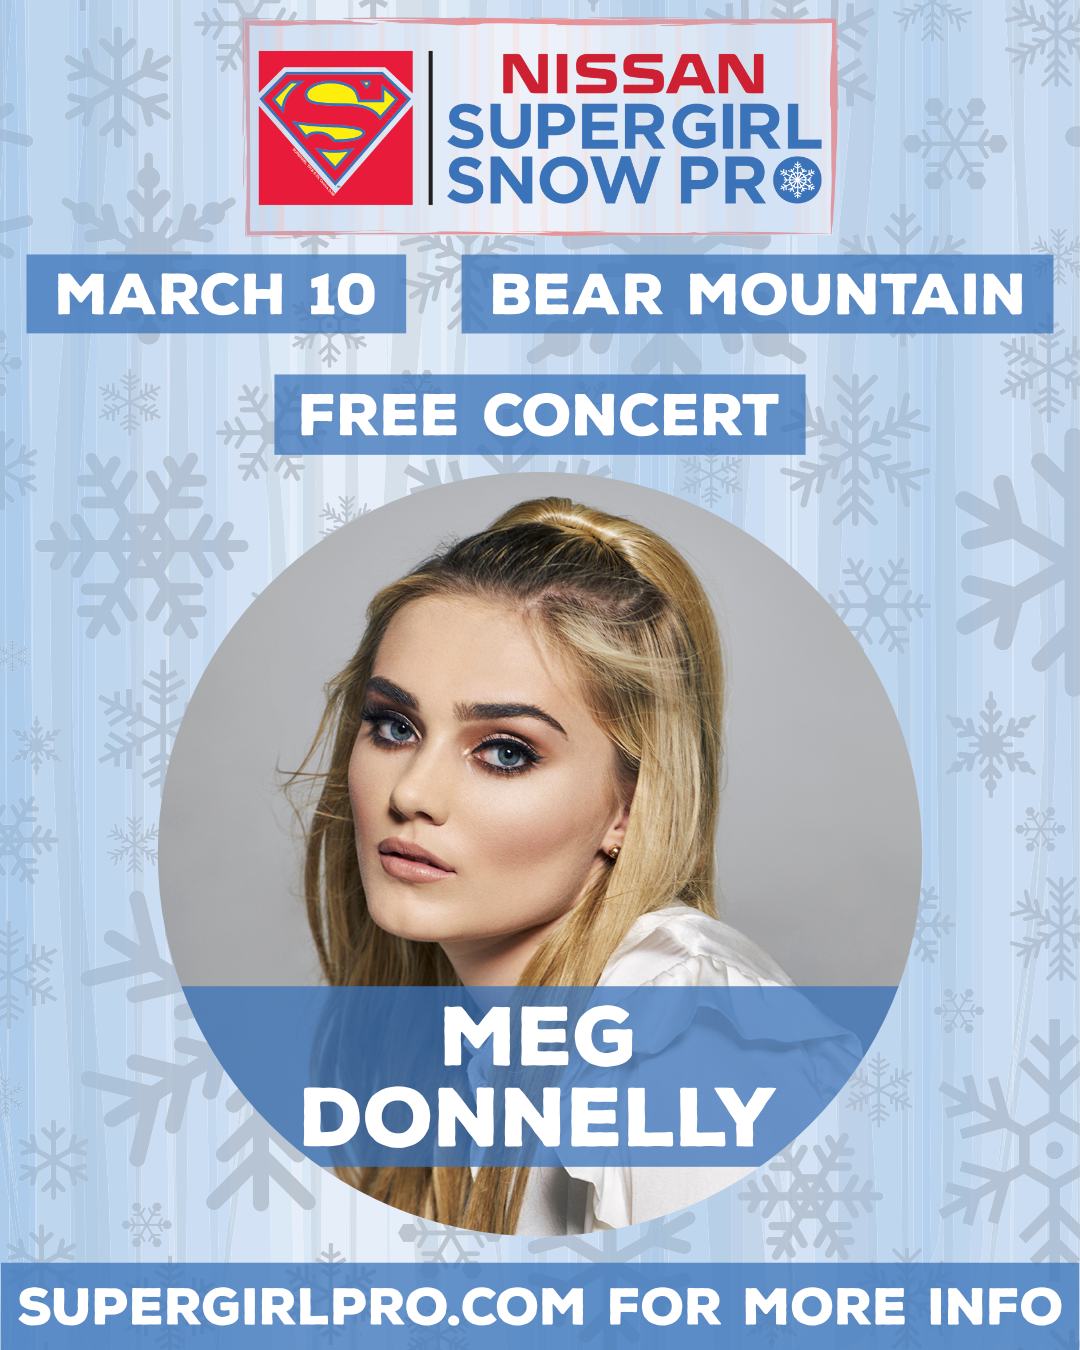 MegDonnelly_Social Media_1080x1350.png